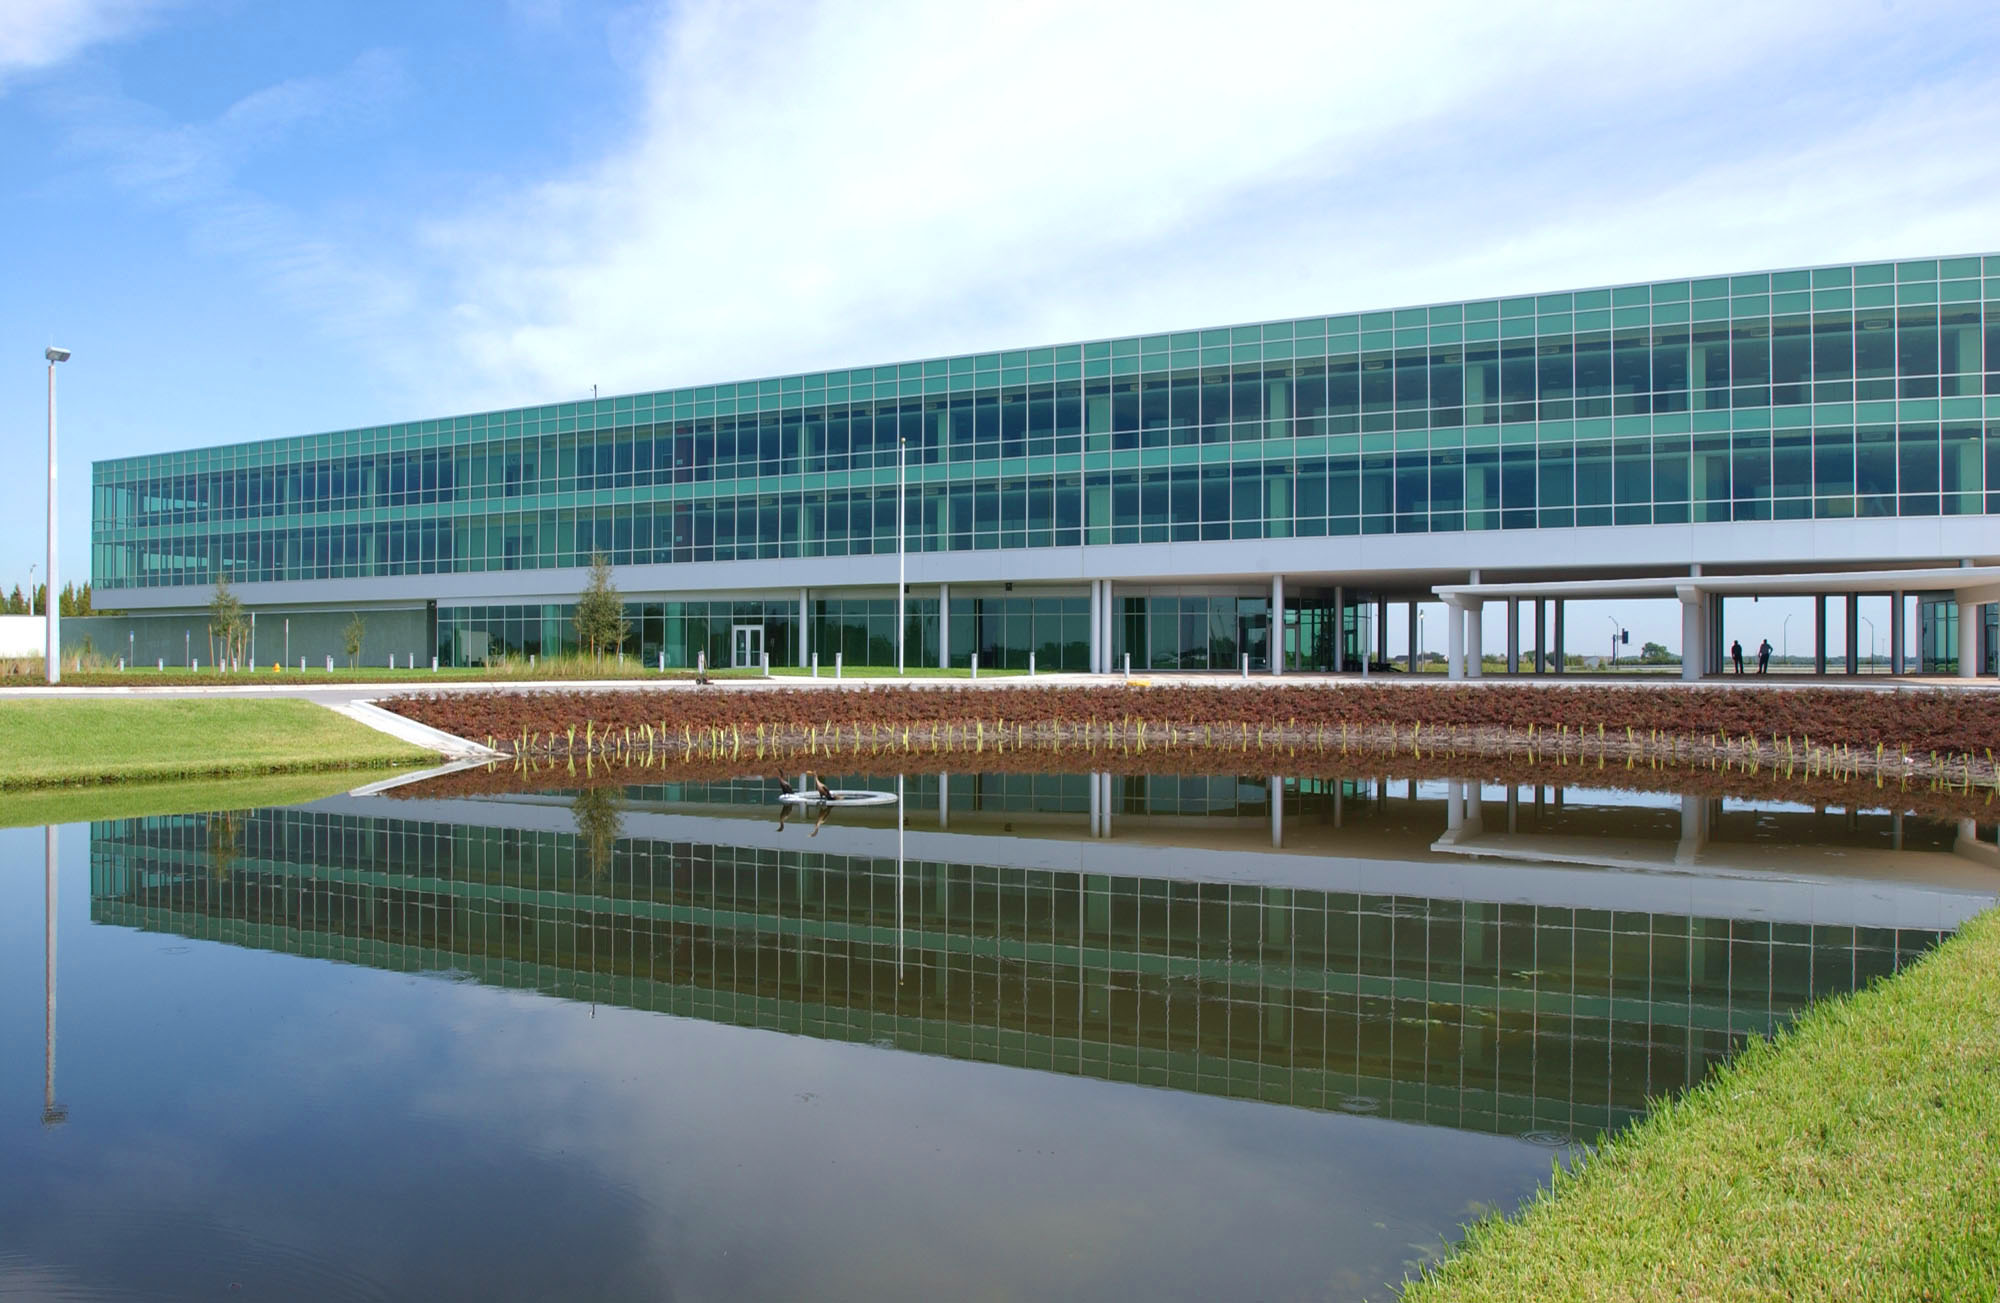 Publix Corporate Office and Headquarters address information